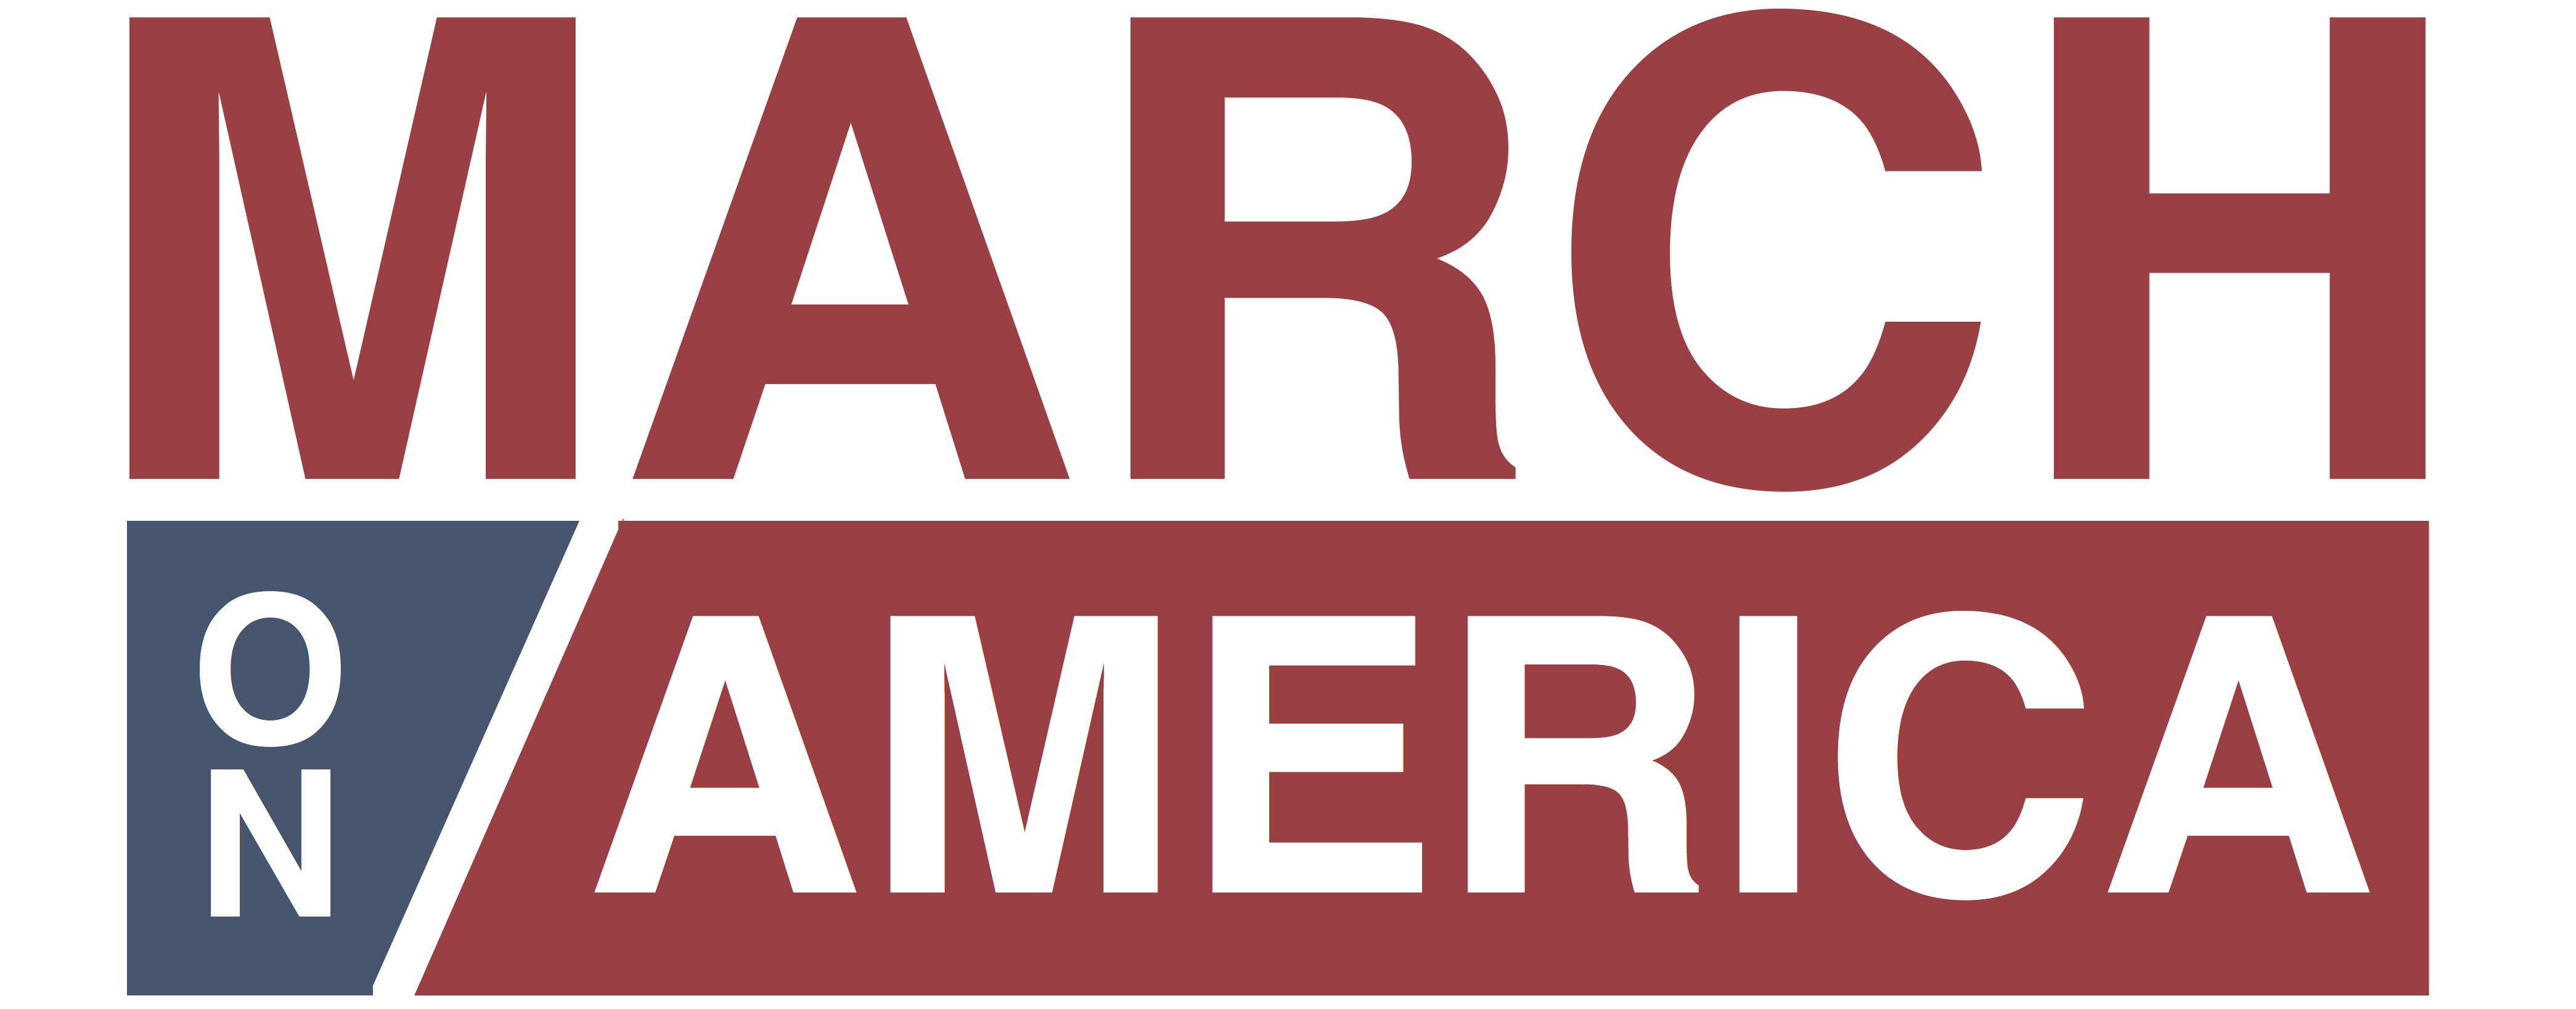 We March For America